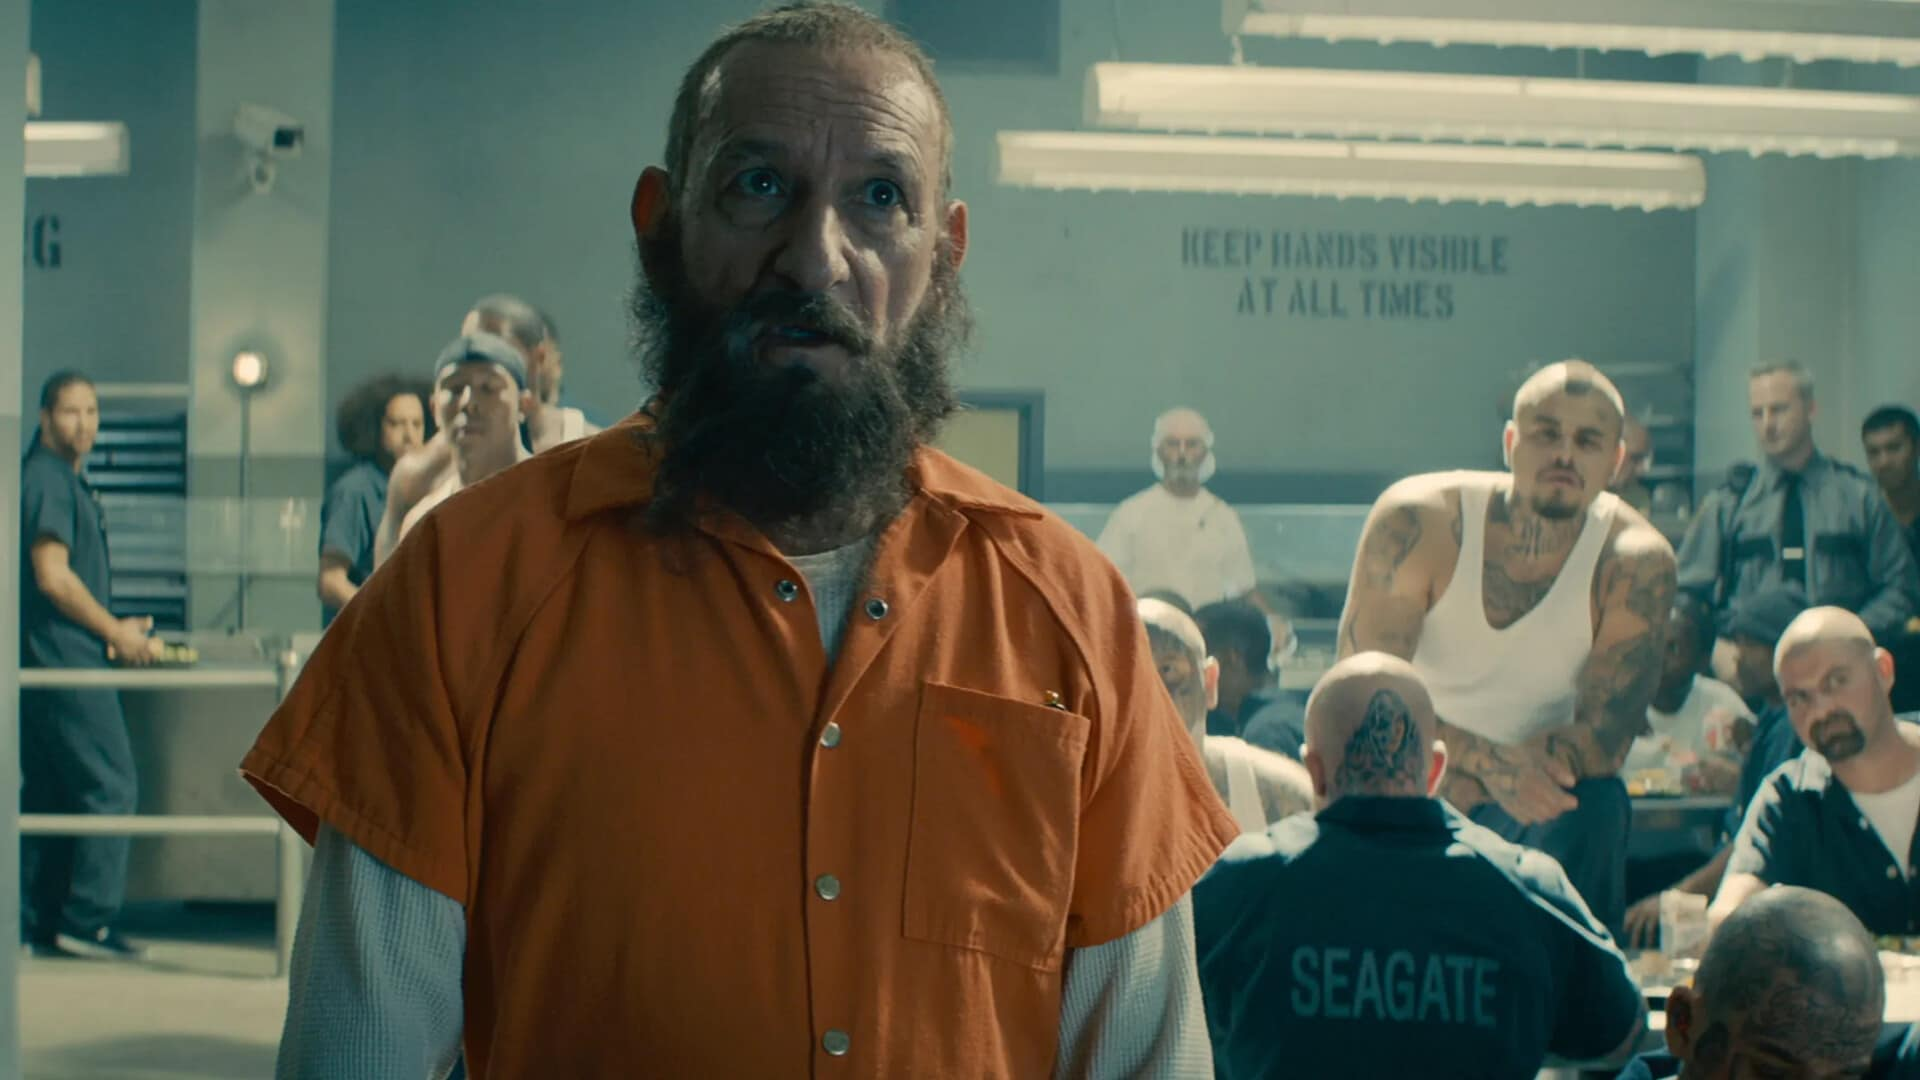 in defense of ben kingsley mandarin iron man 3, clever spin on fu manchu stereotype ahead of shang chi ten rings